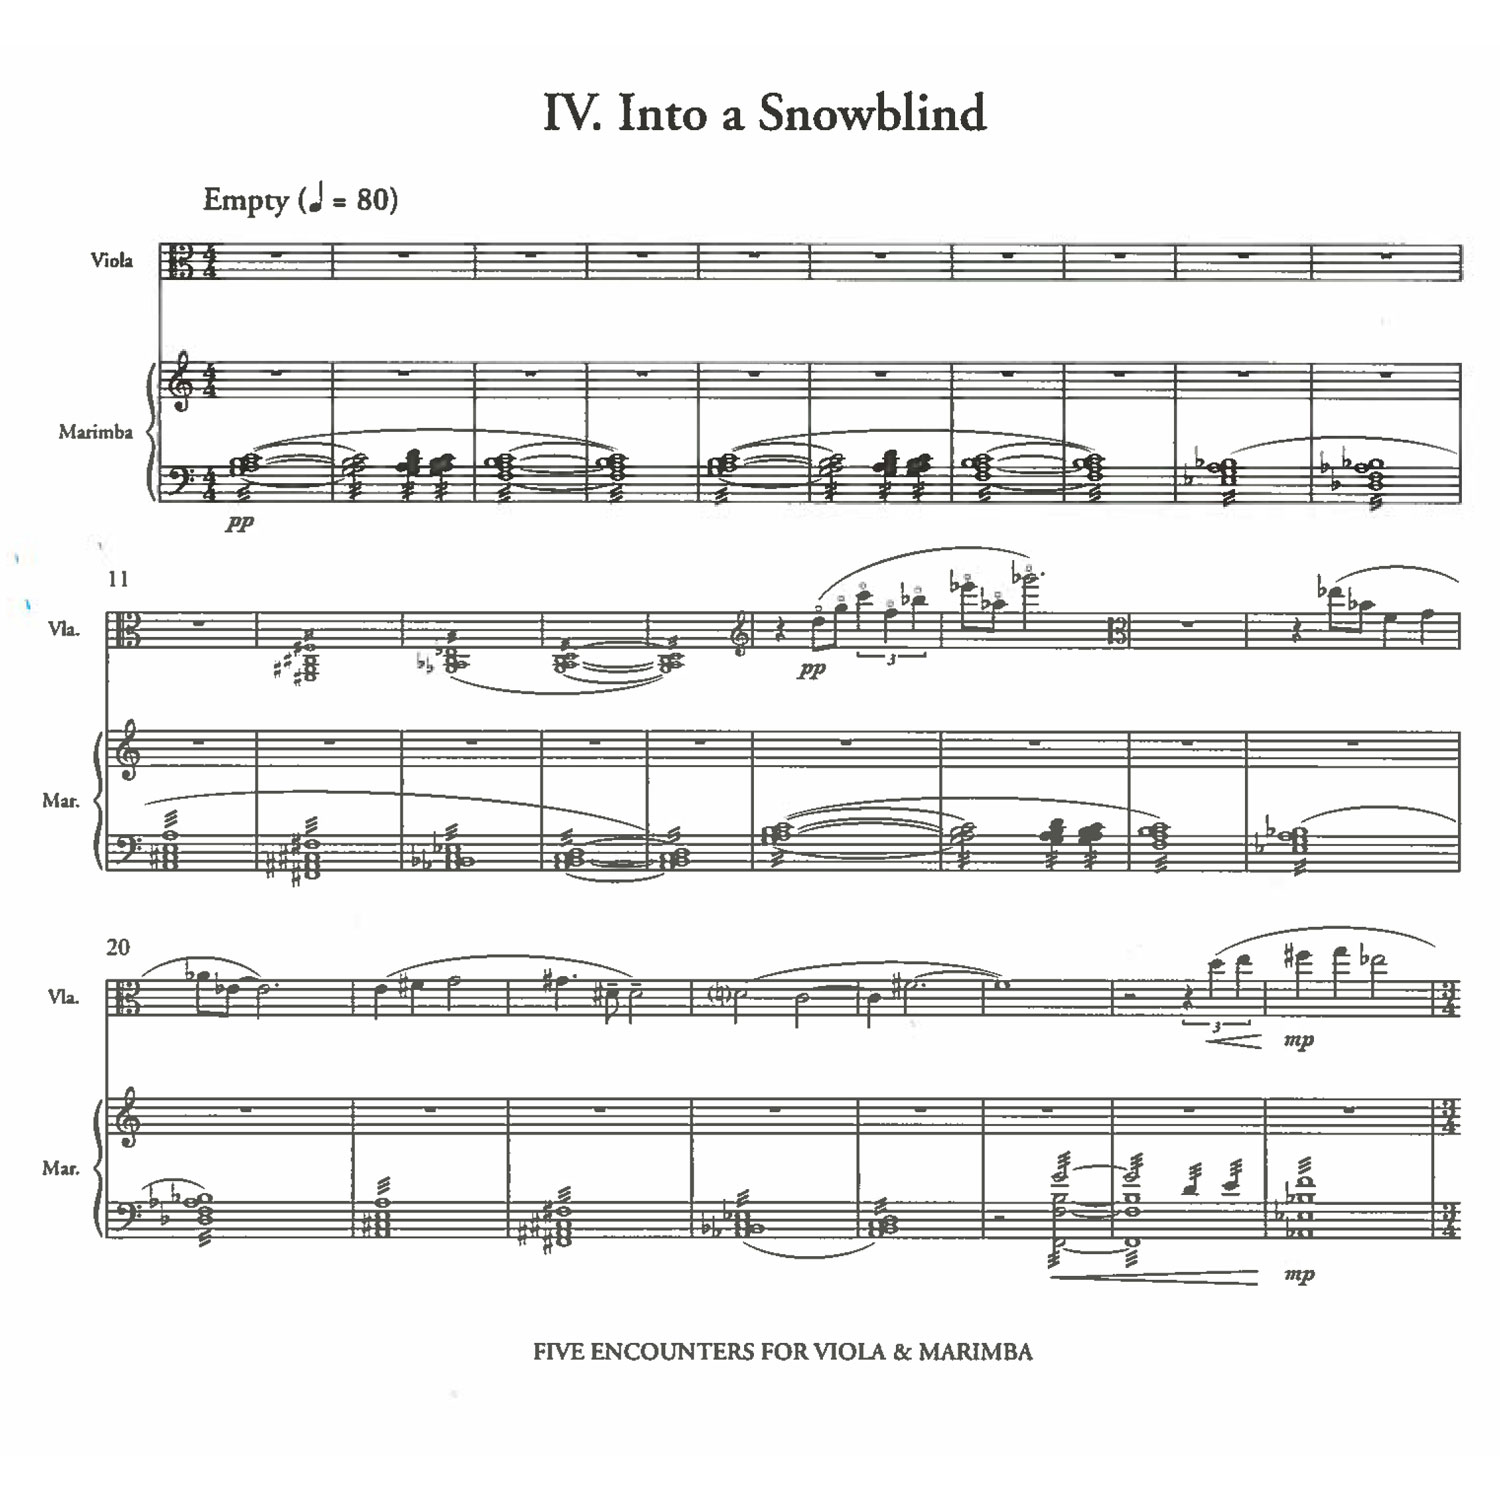 C Alan Publications 21880 alt3 five encounters for viola & marimba by marco schirripa Marco Snake Cable at readyjetset.co